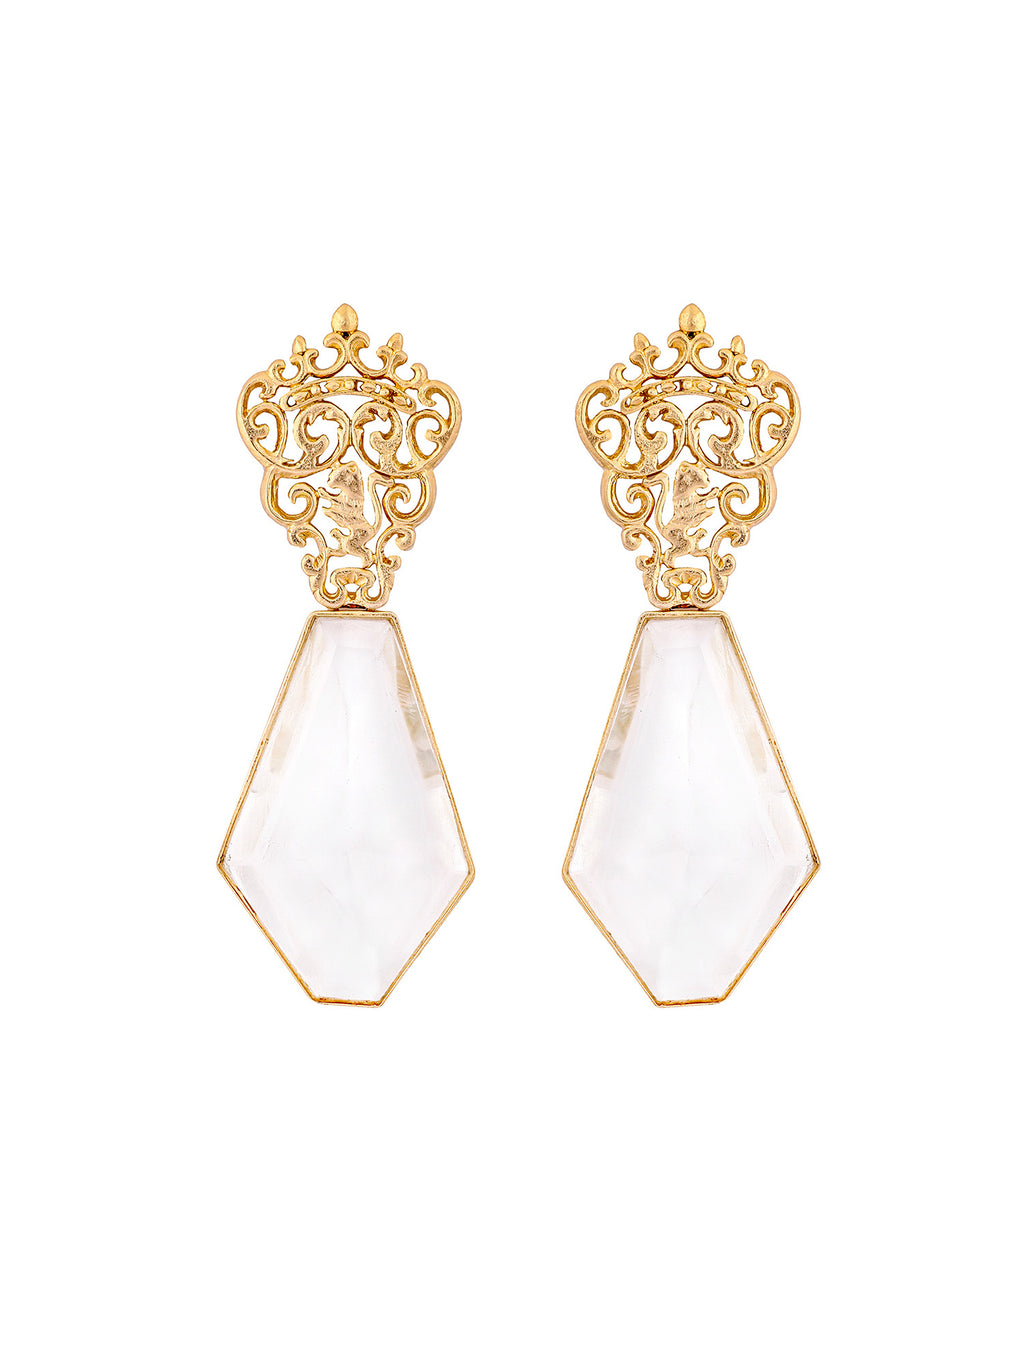 Marguerite Crystal Earrings - Riviera Closet